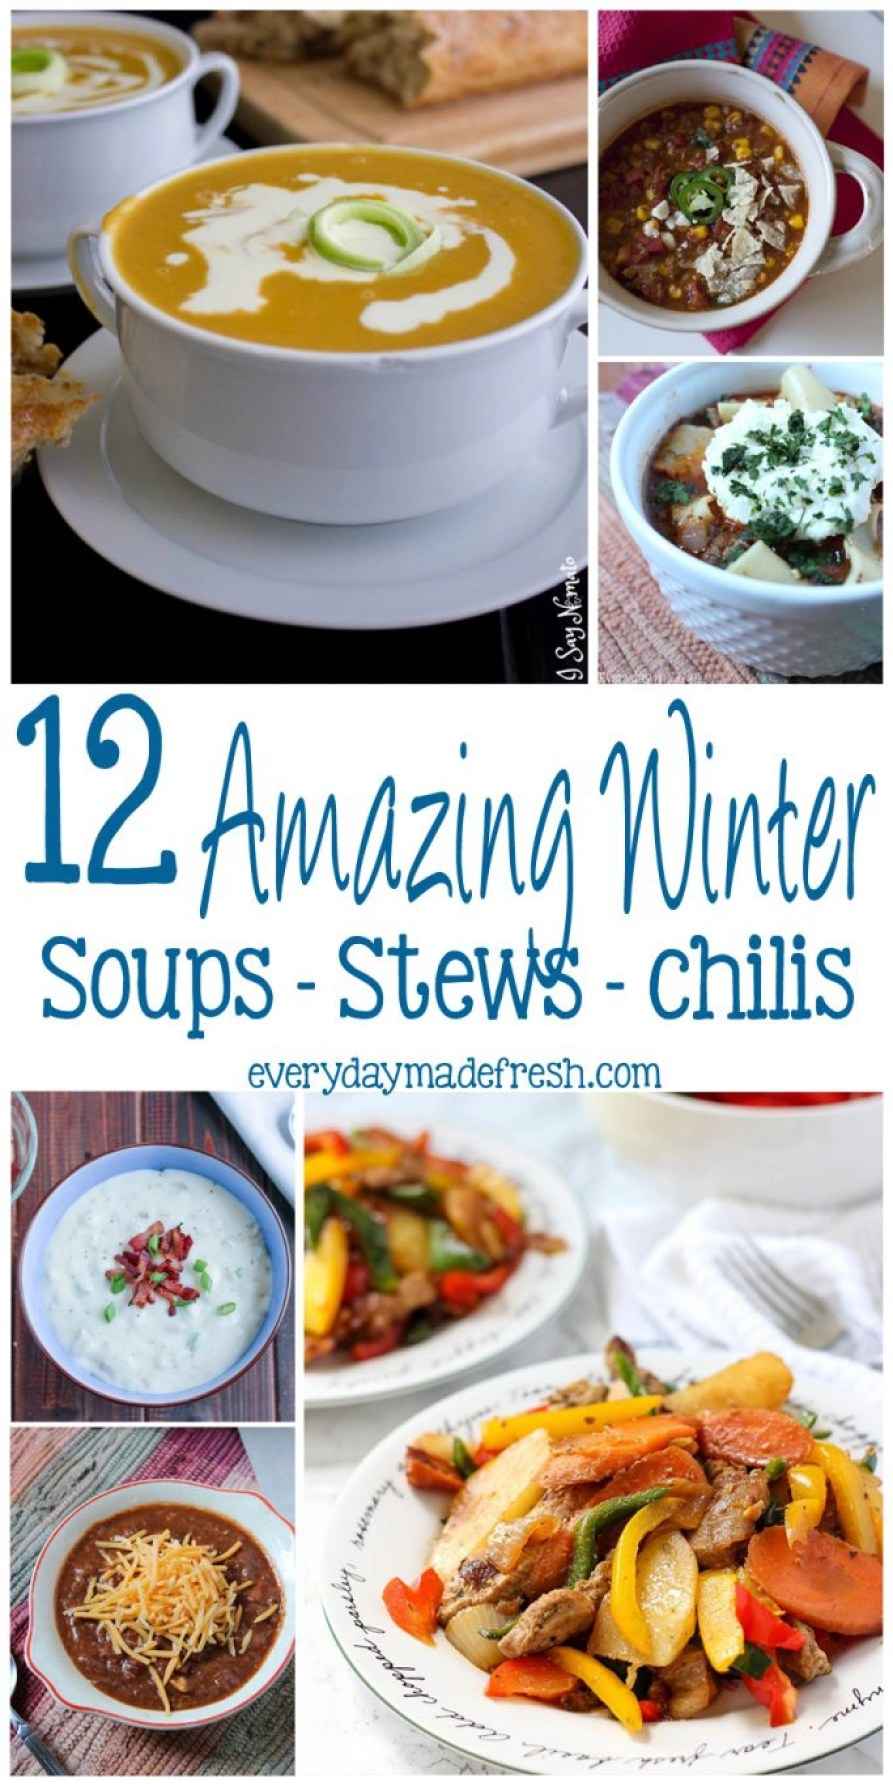 It's winter and everyone is looking for the perfect recipe after a day in the cold. I have picked 12 Amazing Soups - Stews - Chilis that will be the perfect bowl to warm up to!   EverydayMadeFresh.com